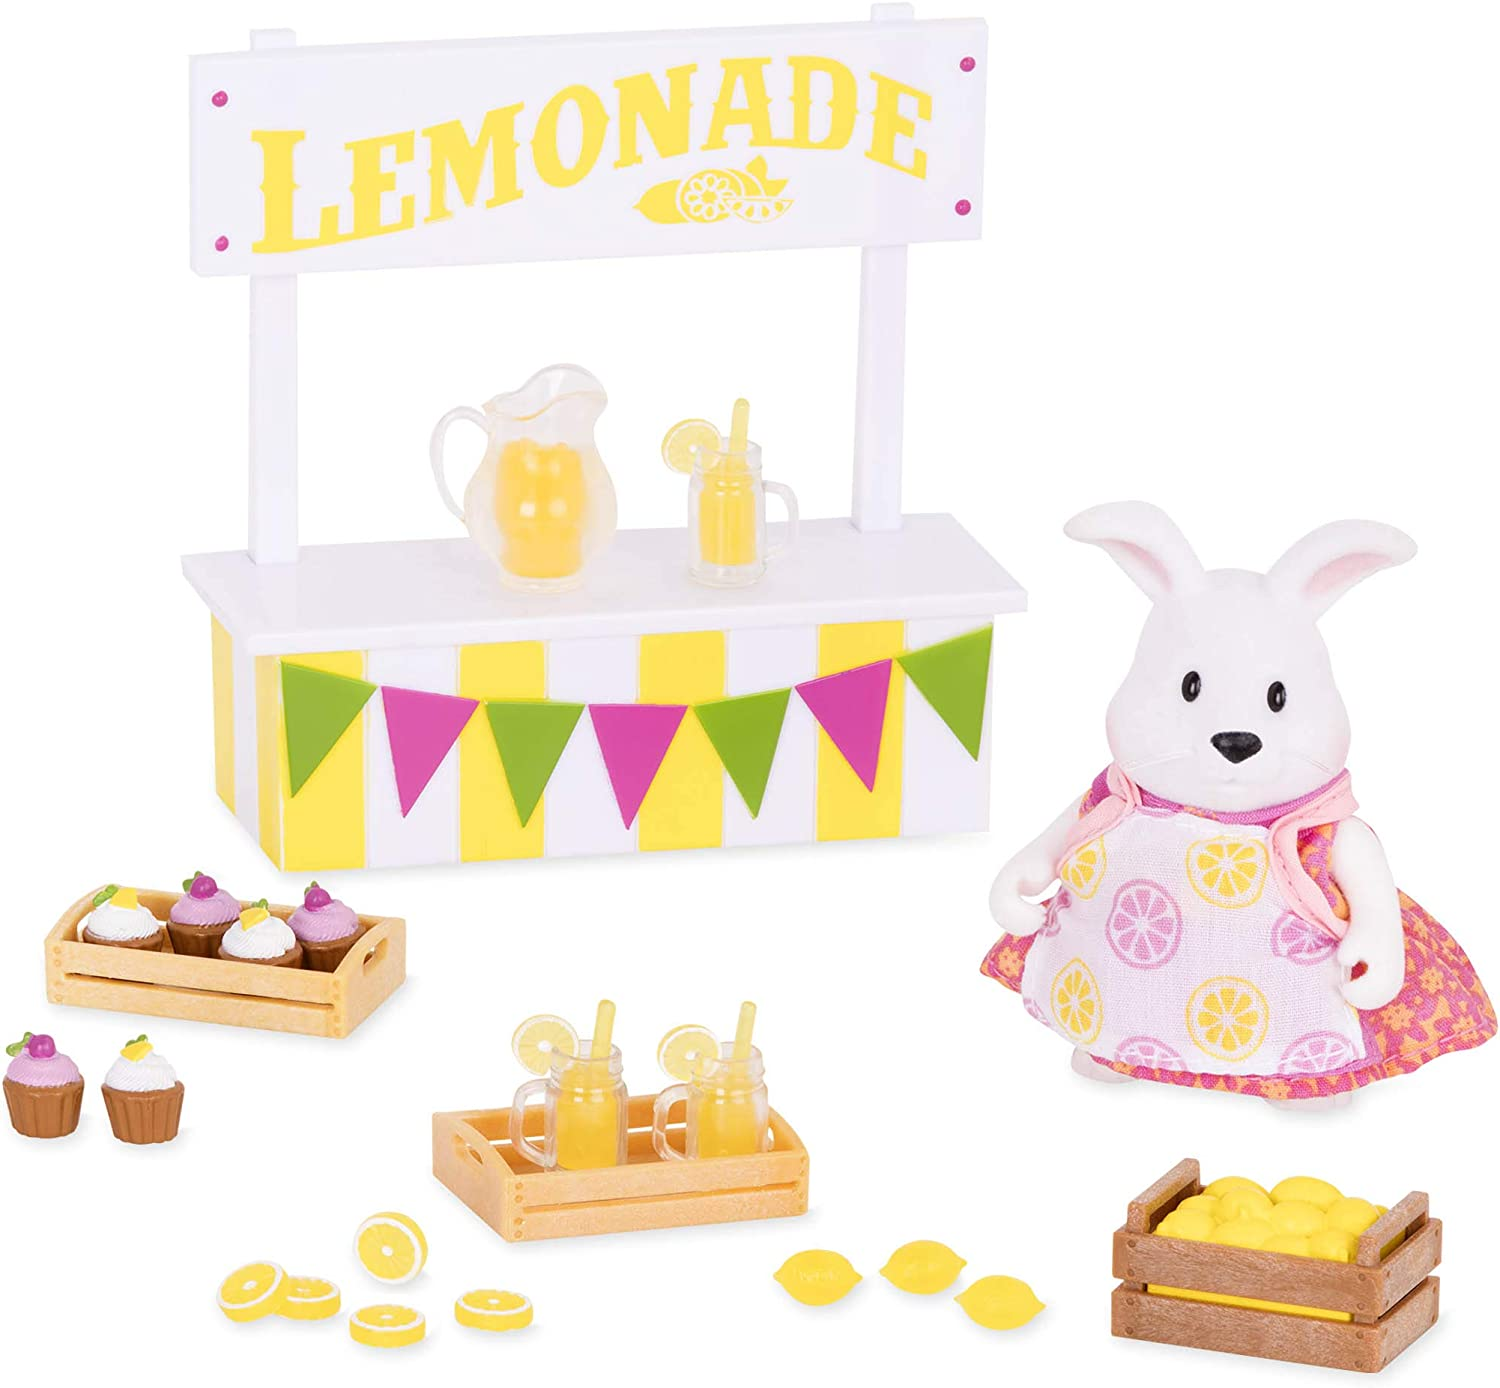 Li'l Woodzeez Lemonade Stand Playset – 25pc Toy Set with Rabbit Figurine, Play Food, and Miniature Accessories – Toys and Gifts for Kids Aged 3 and Up